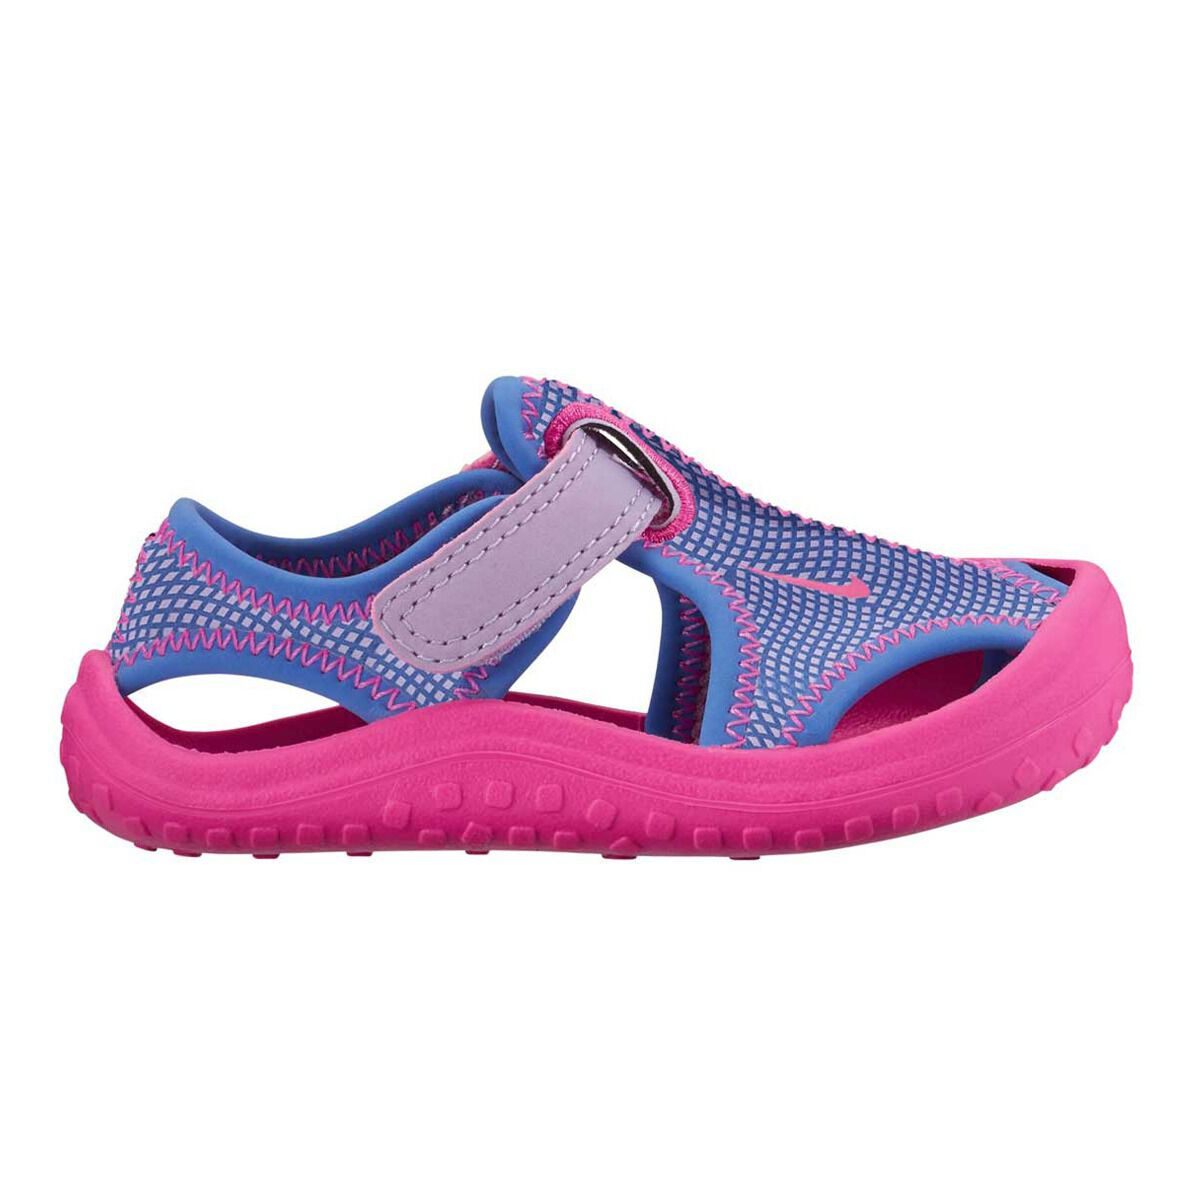 Clothing, Shoes & Accessories Nike Sunray Sandals Size 8.5